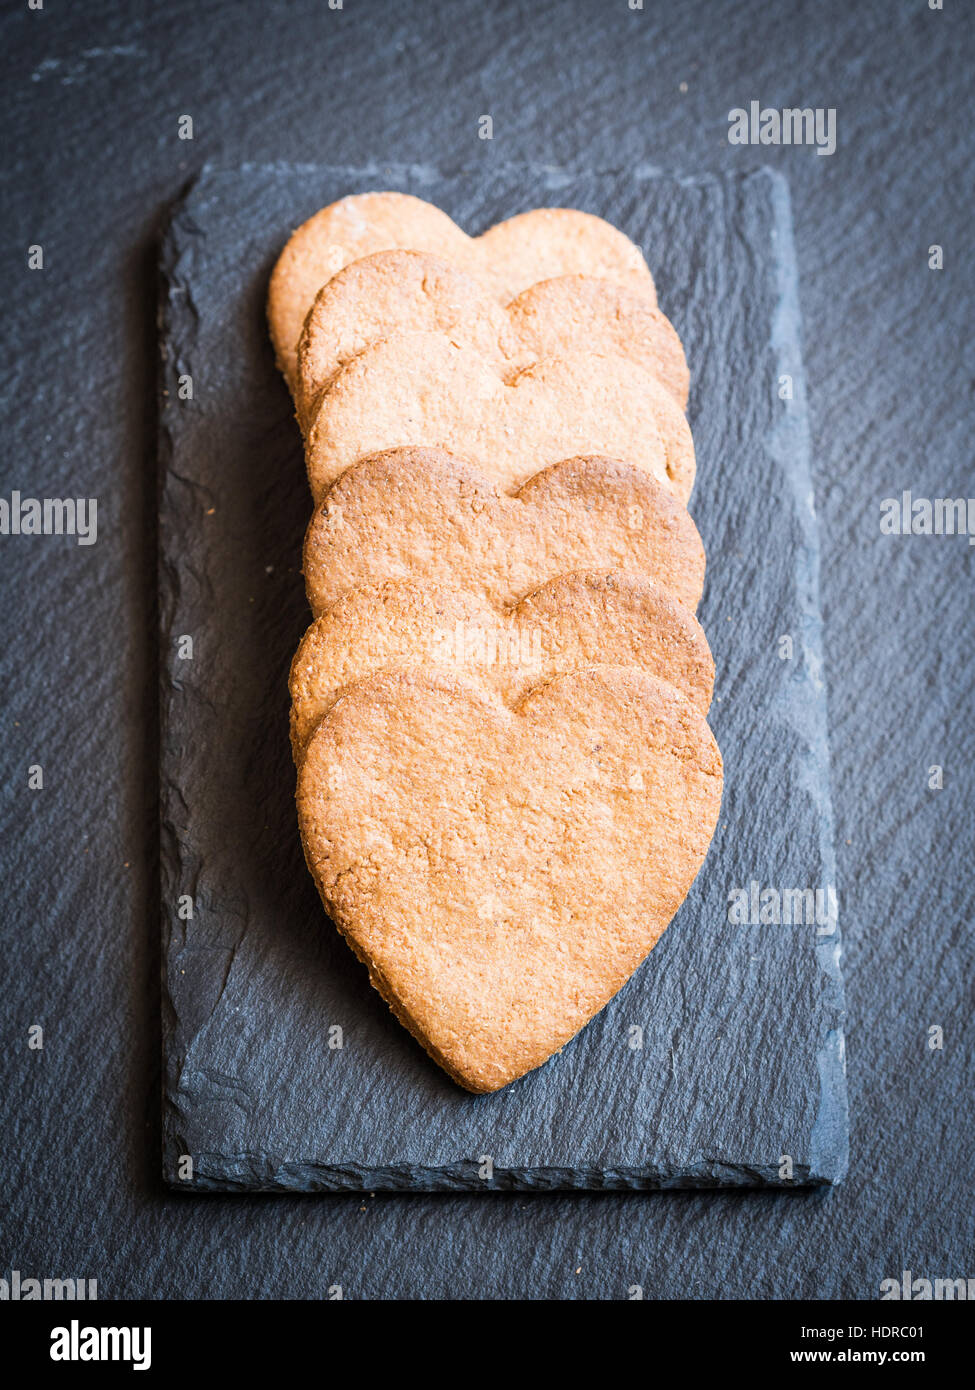 Heart-shaped gingerbread cookies on a dark background. - Stock Image